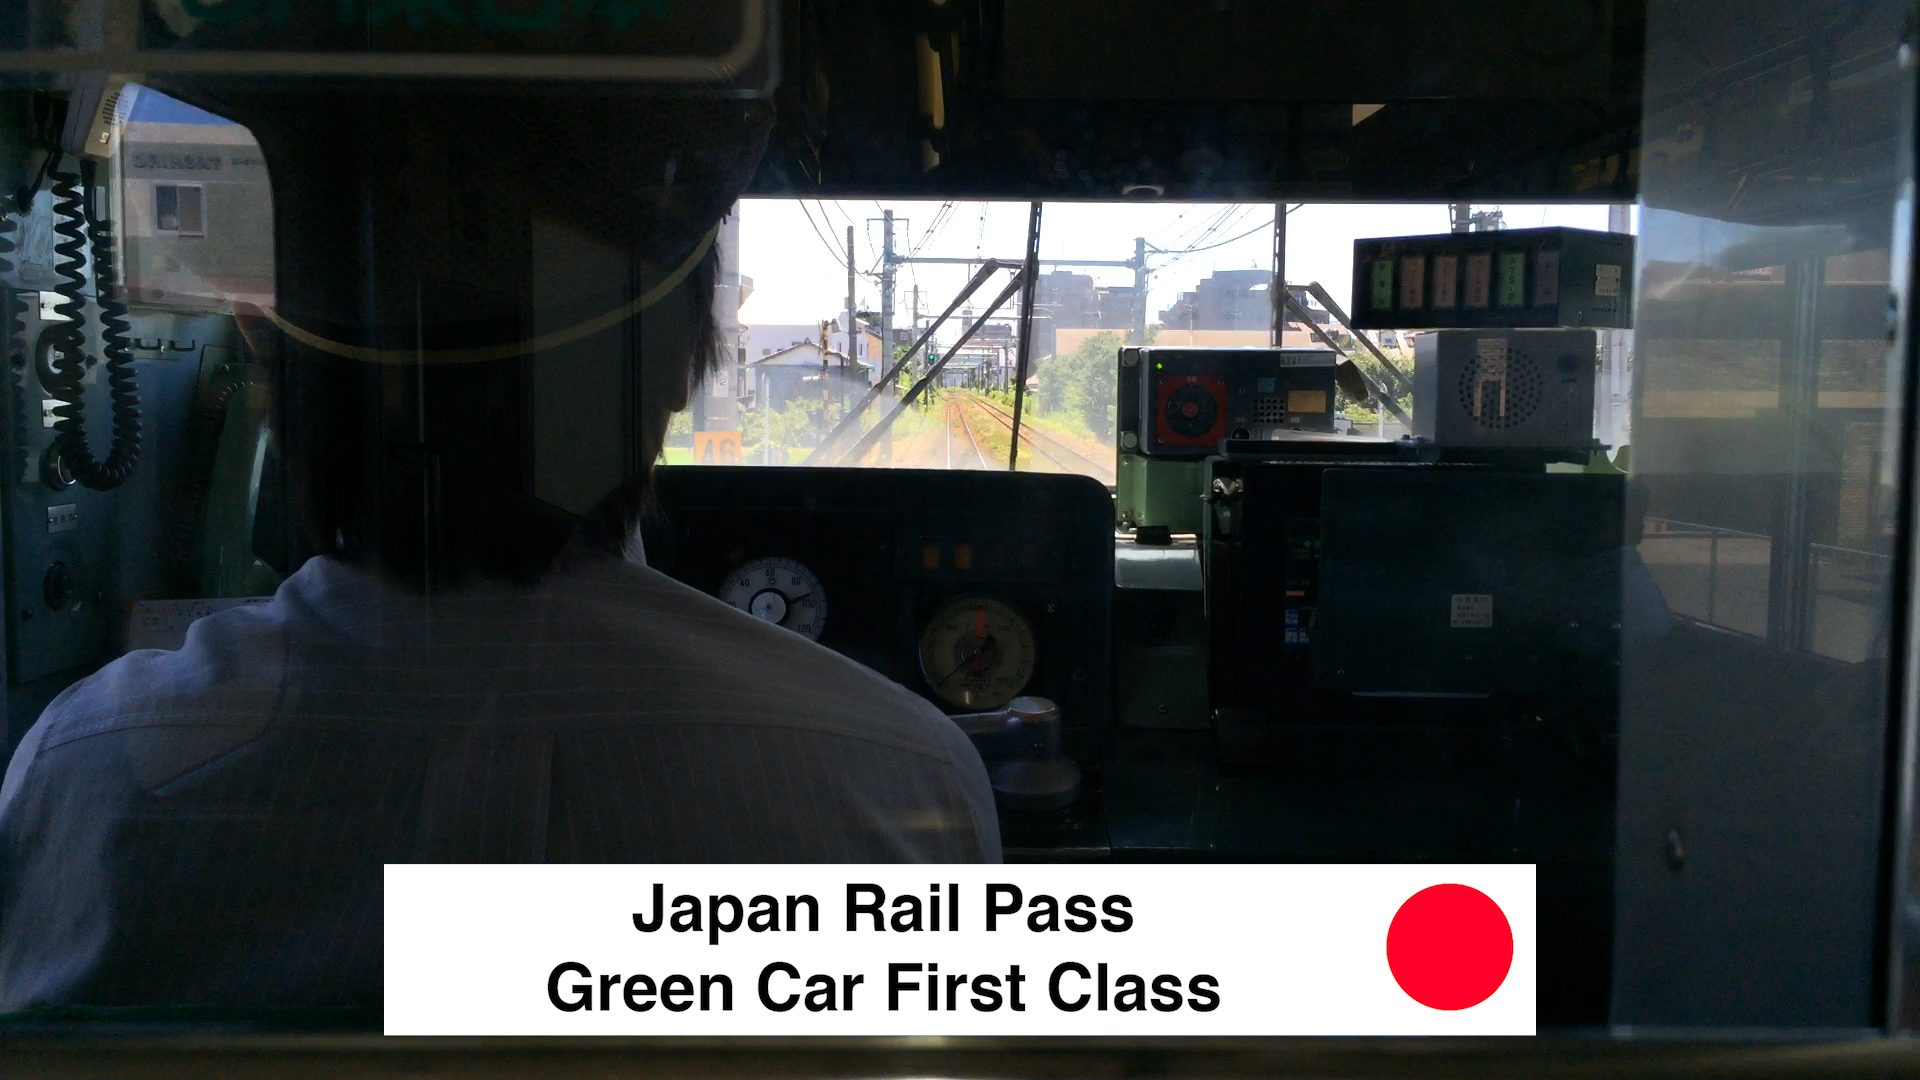 Japan Rail Green Car - Where To Buy Japan Rail Pass How To Use JR Pass In Tokyo. JR Pass Price